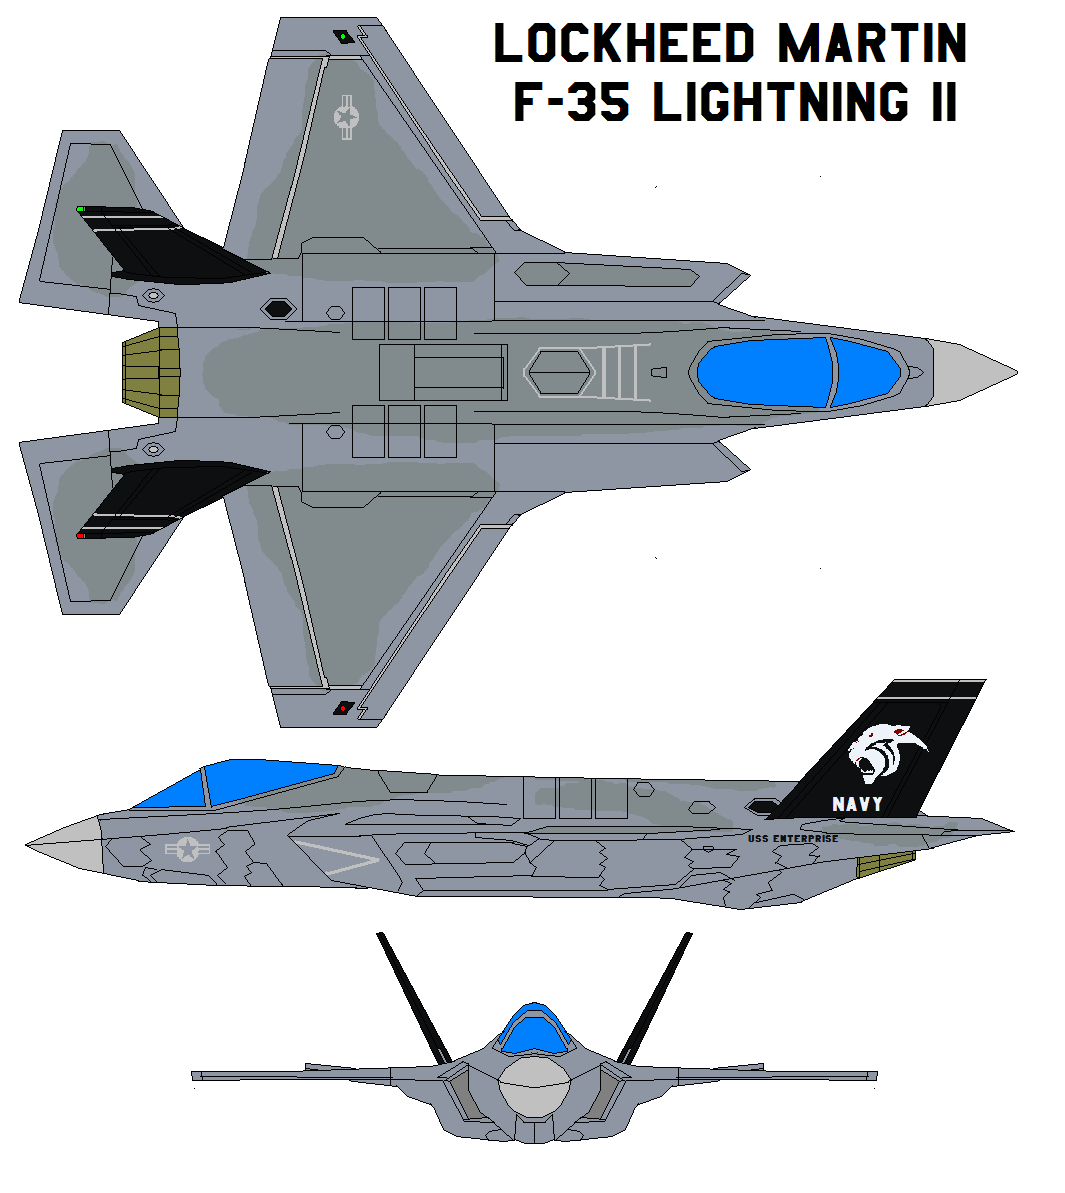 V 22 Osprey Engine Diagram together with Bp AP AssemblyDetail together with Lockheed Martin F 35 Lightning 113164906 additionally Tractor Engine Diagrams besides 530616. on kfx 50 engine diagram